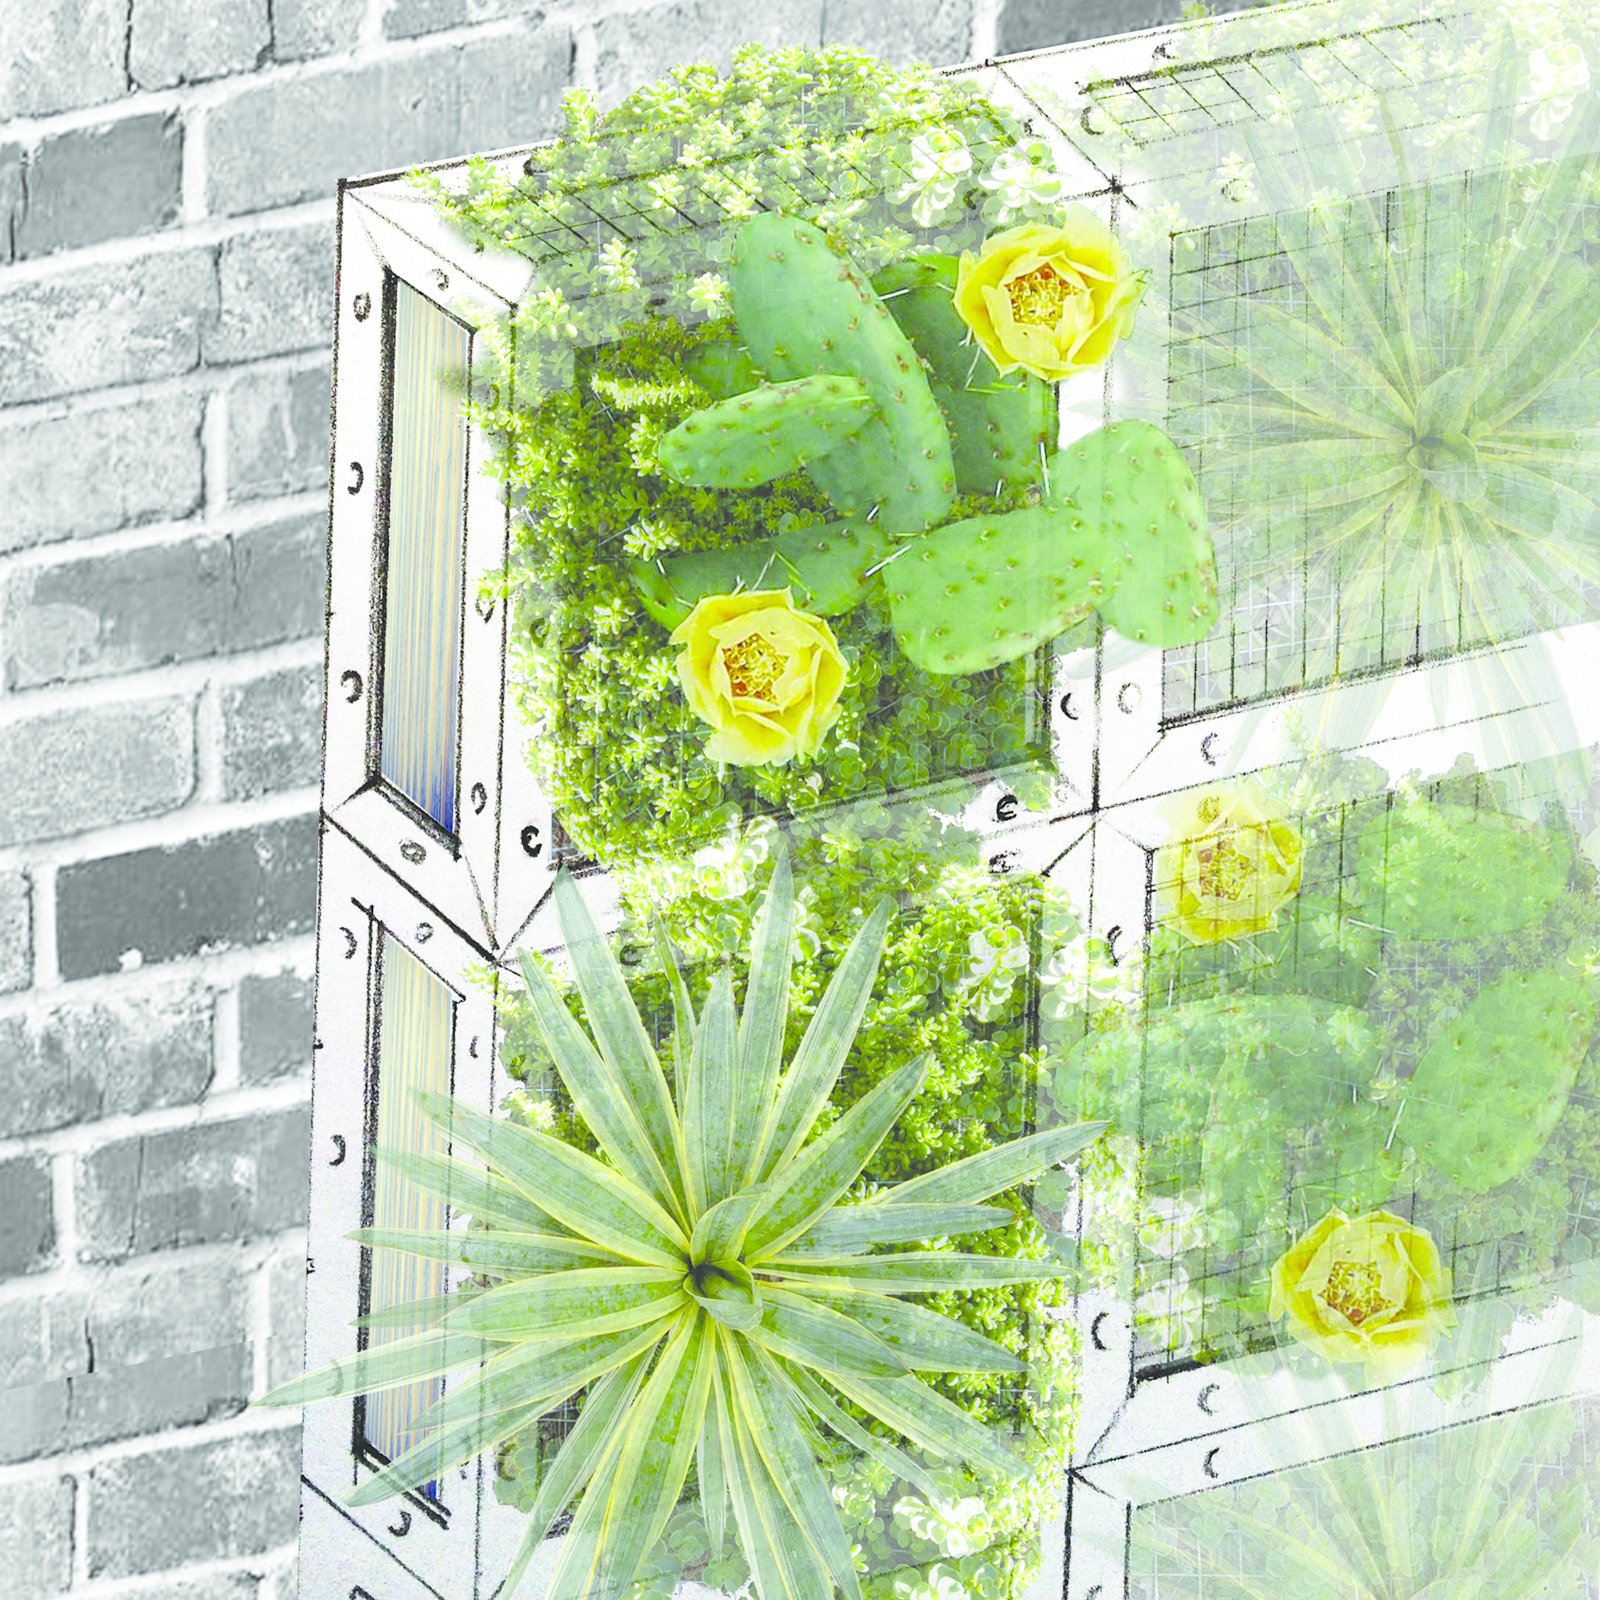 Imagining its allotted ten square feet as vertical space, Greenlab Studio suggests a living wall of succulents and hardy plants growing in a wood, stainless-steel, and wire mesh frame.